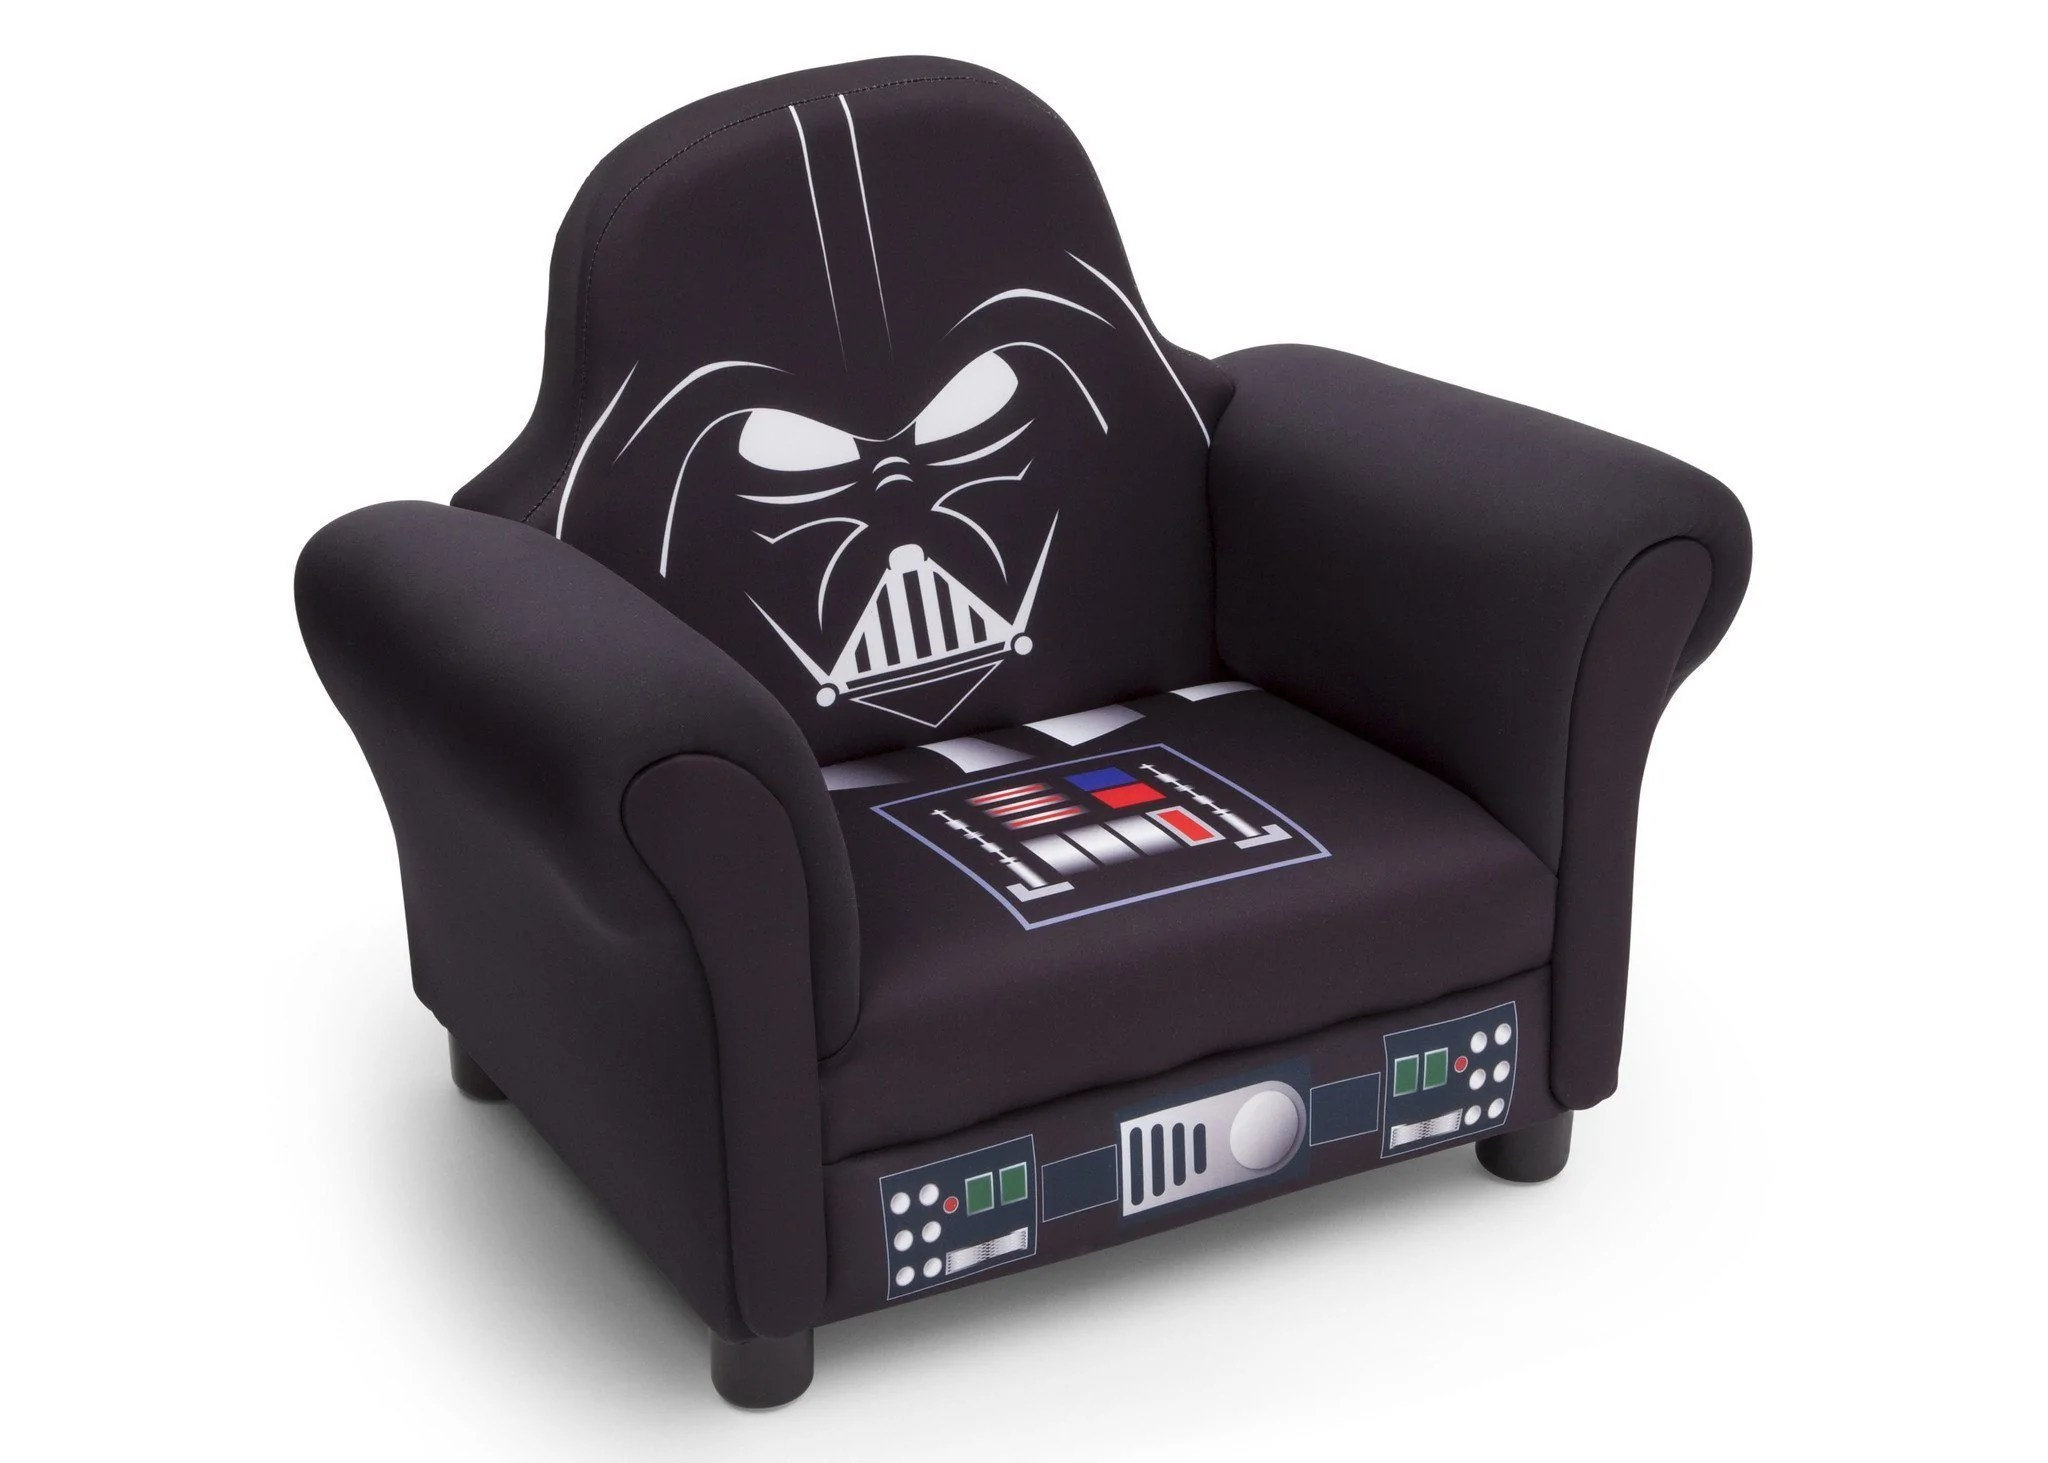 Star Wars Chairs Star Wars Deluxe Upholstered Chair Darth Vader Delta